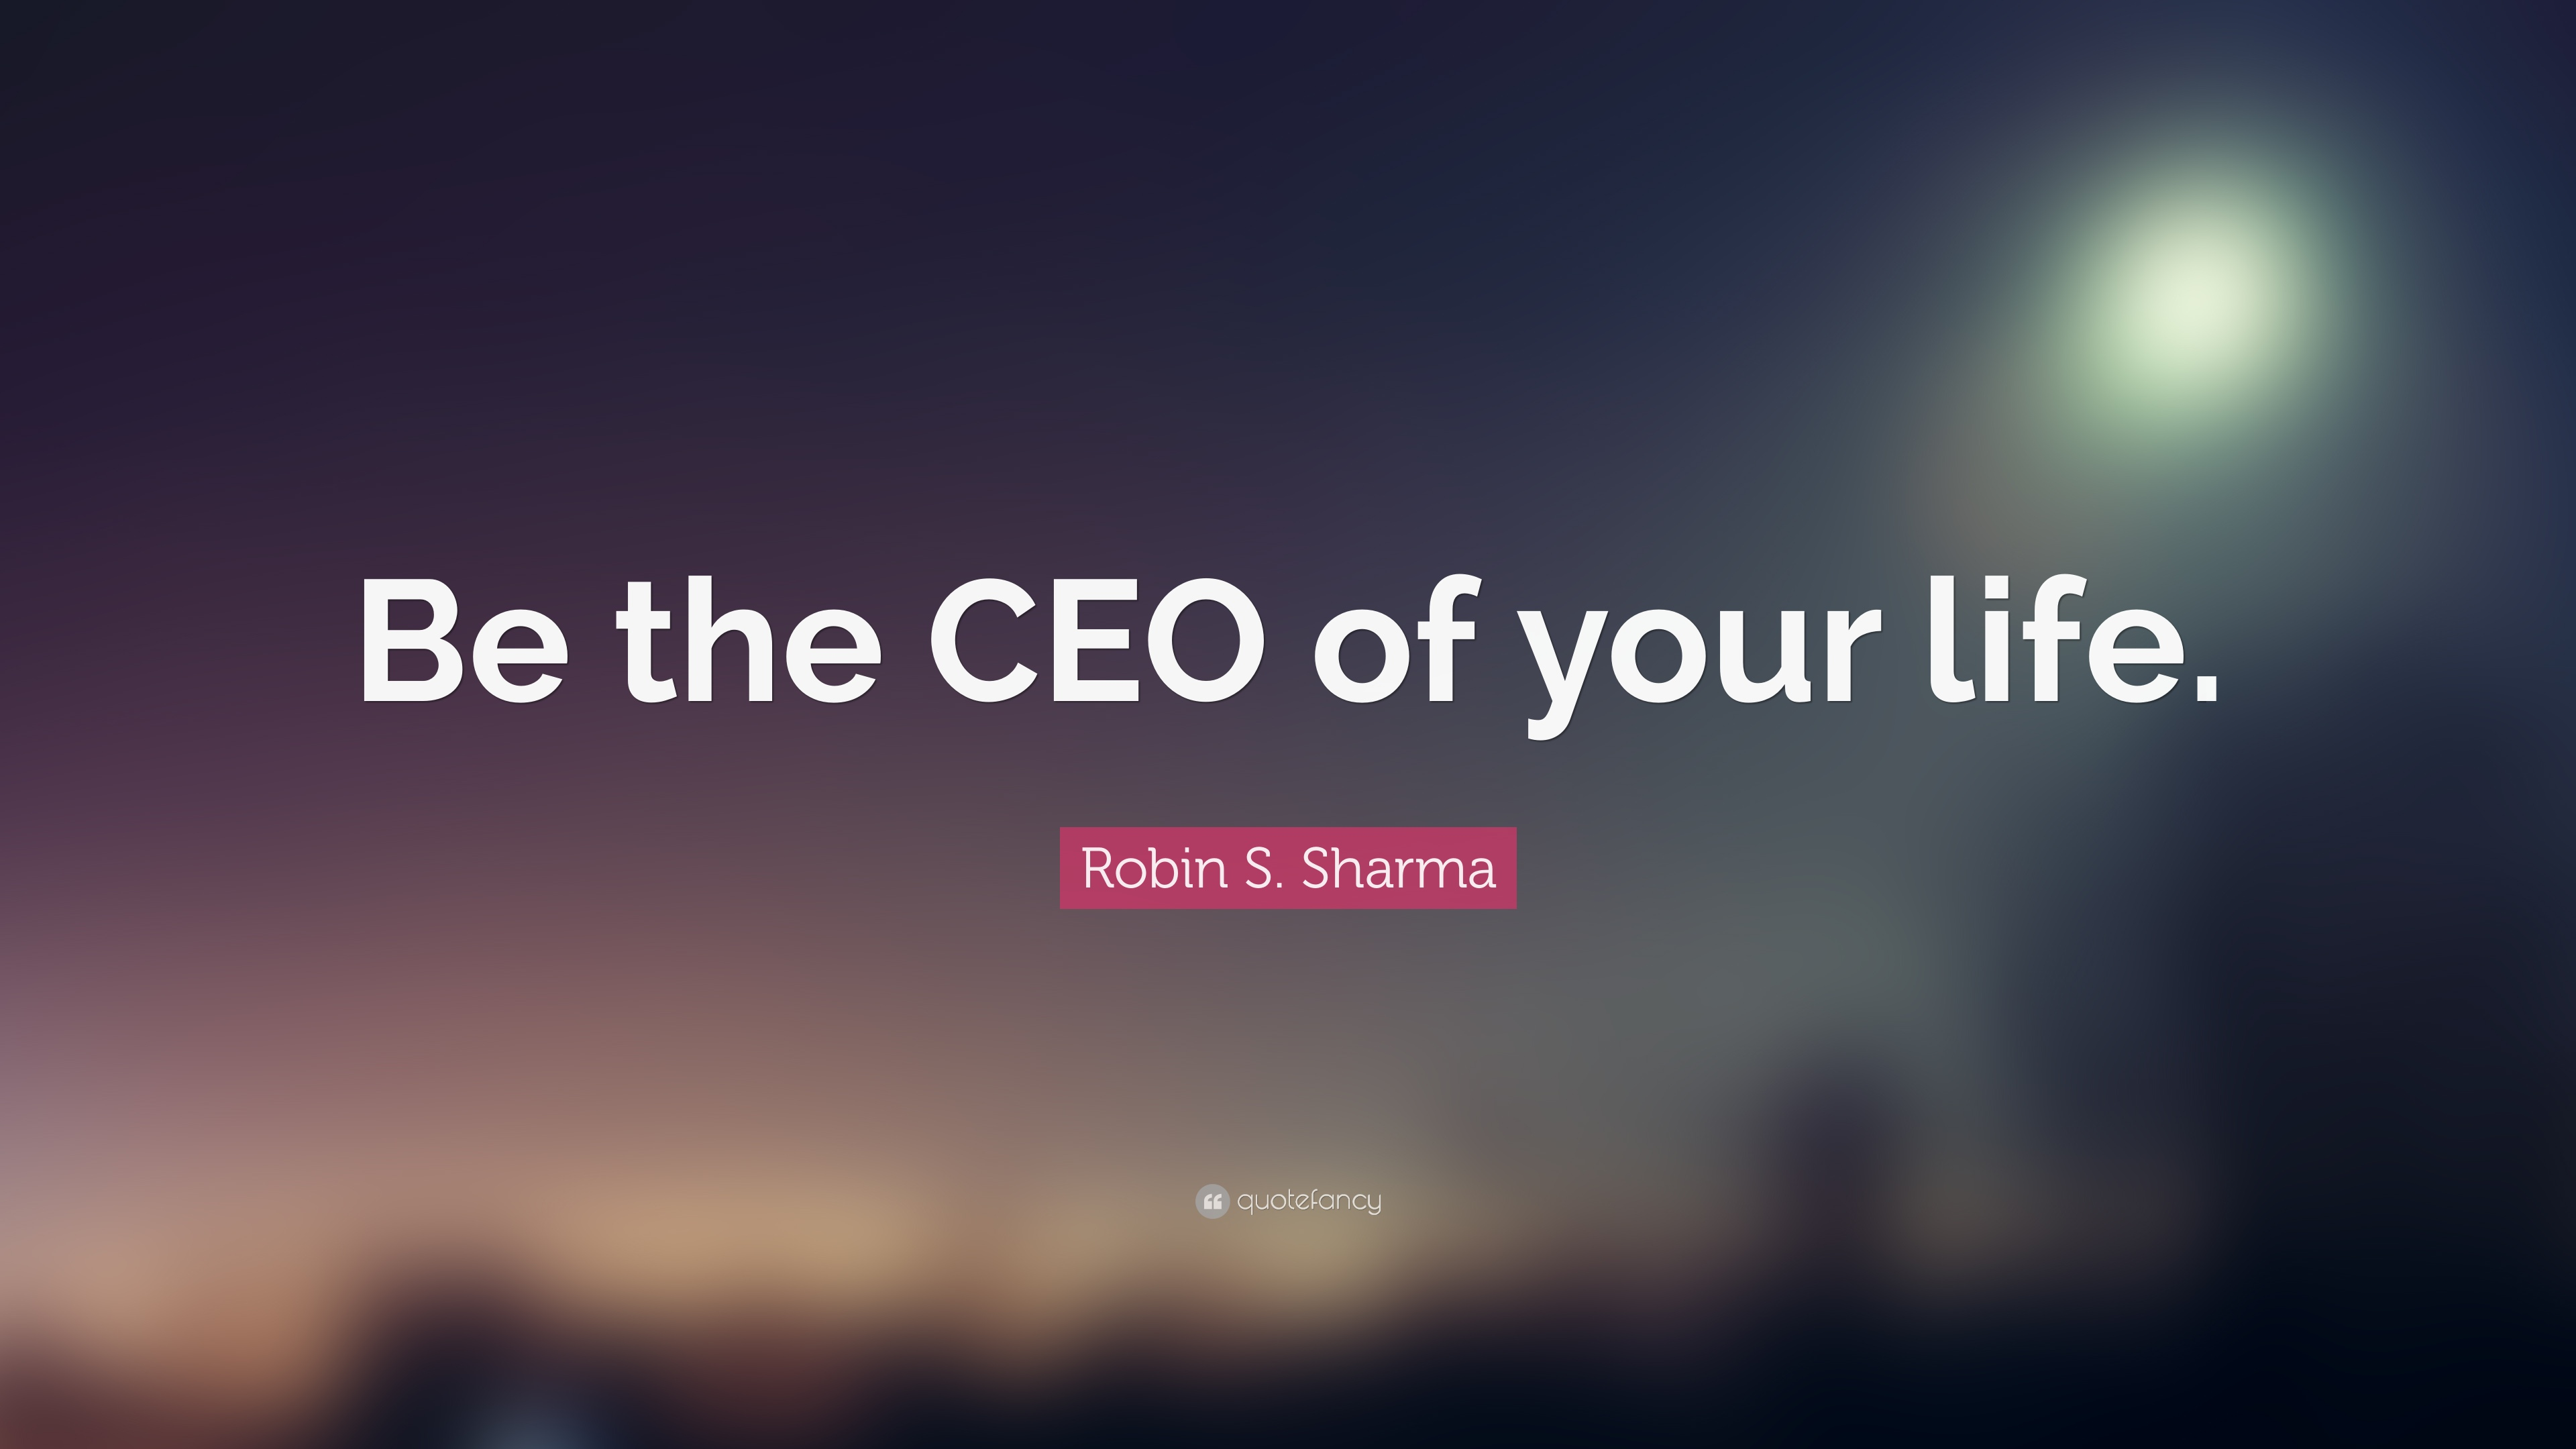 Robin S Sharma Quote Be The CEO Of Your Life